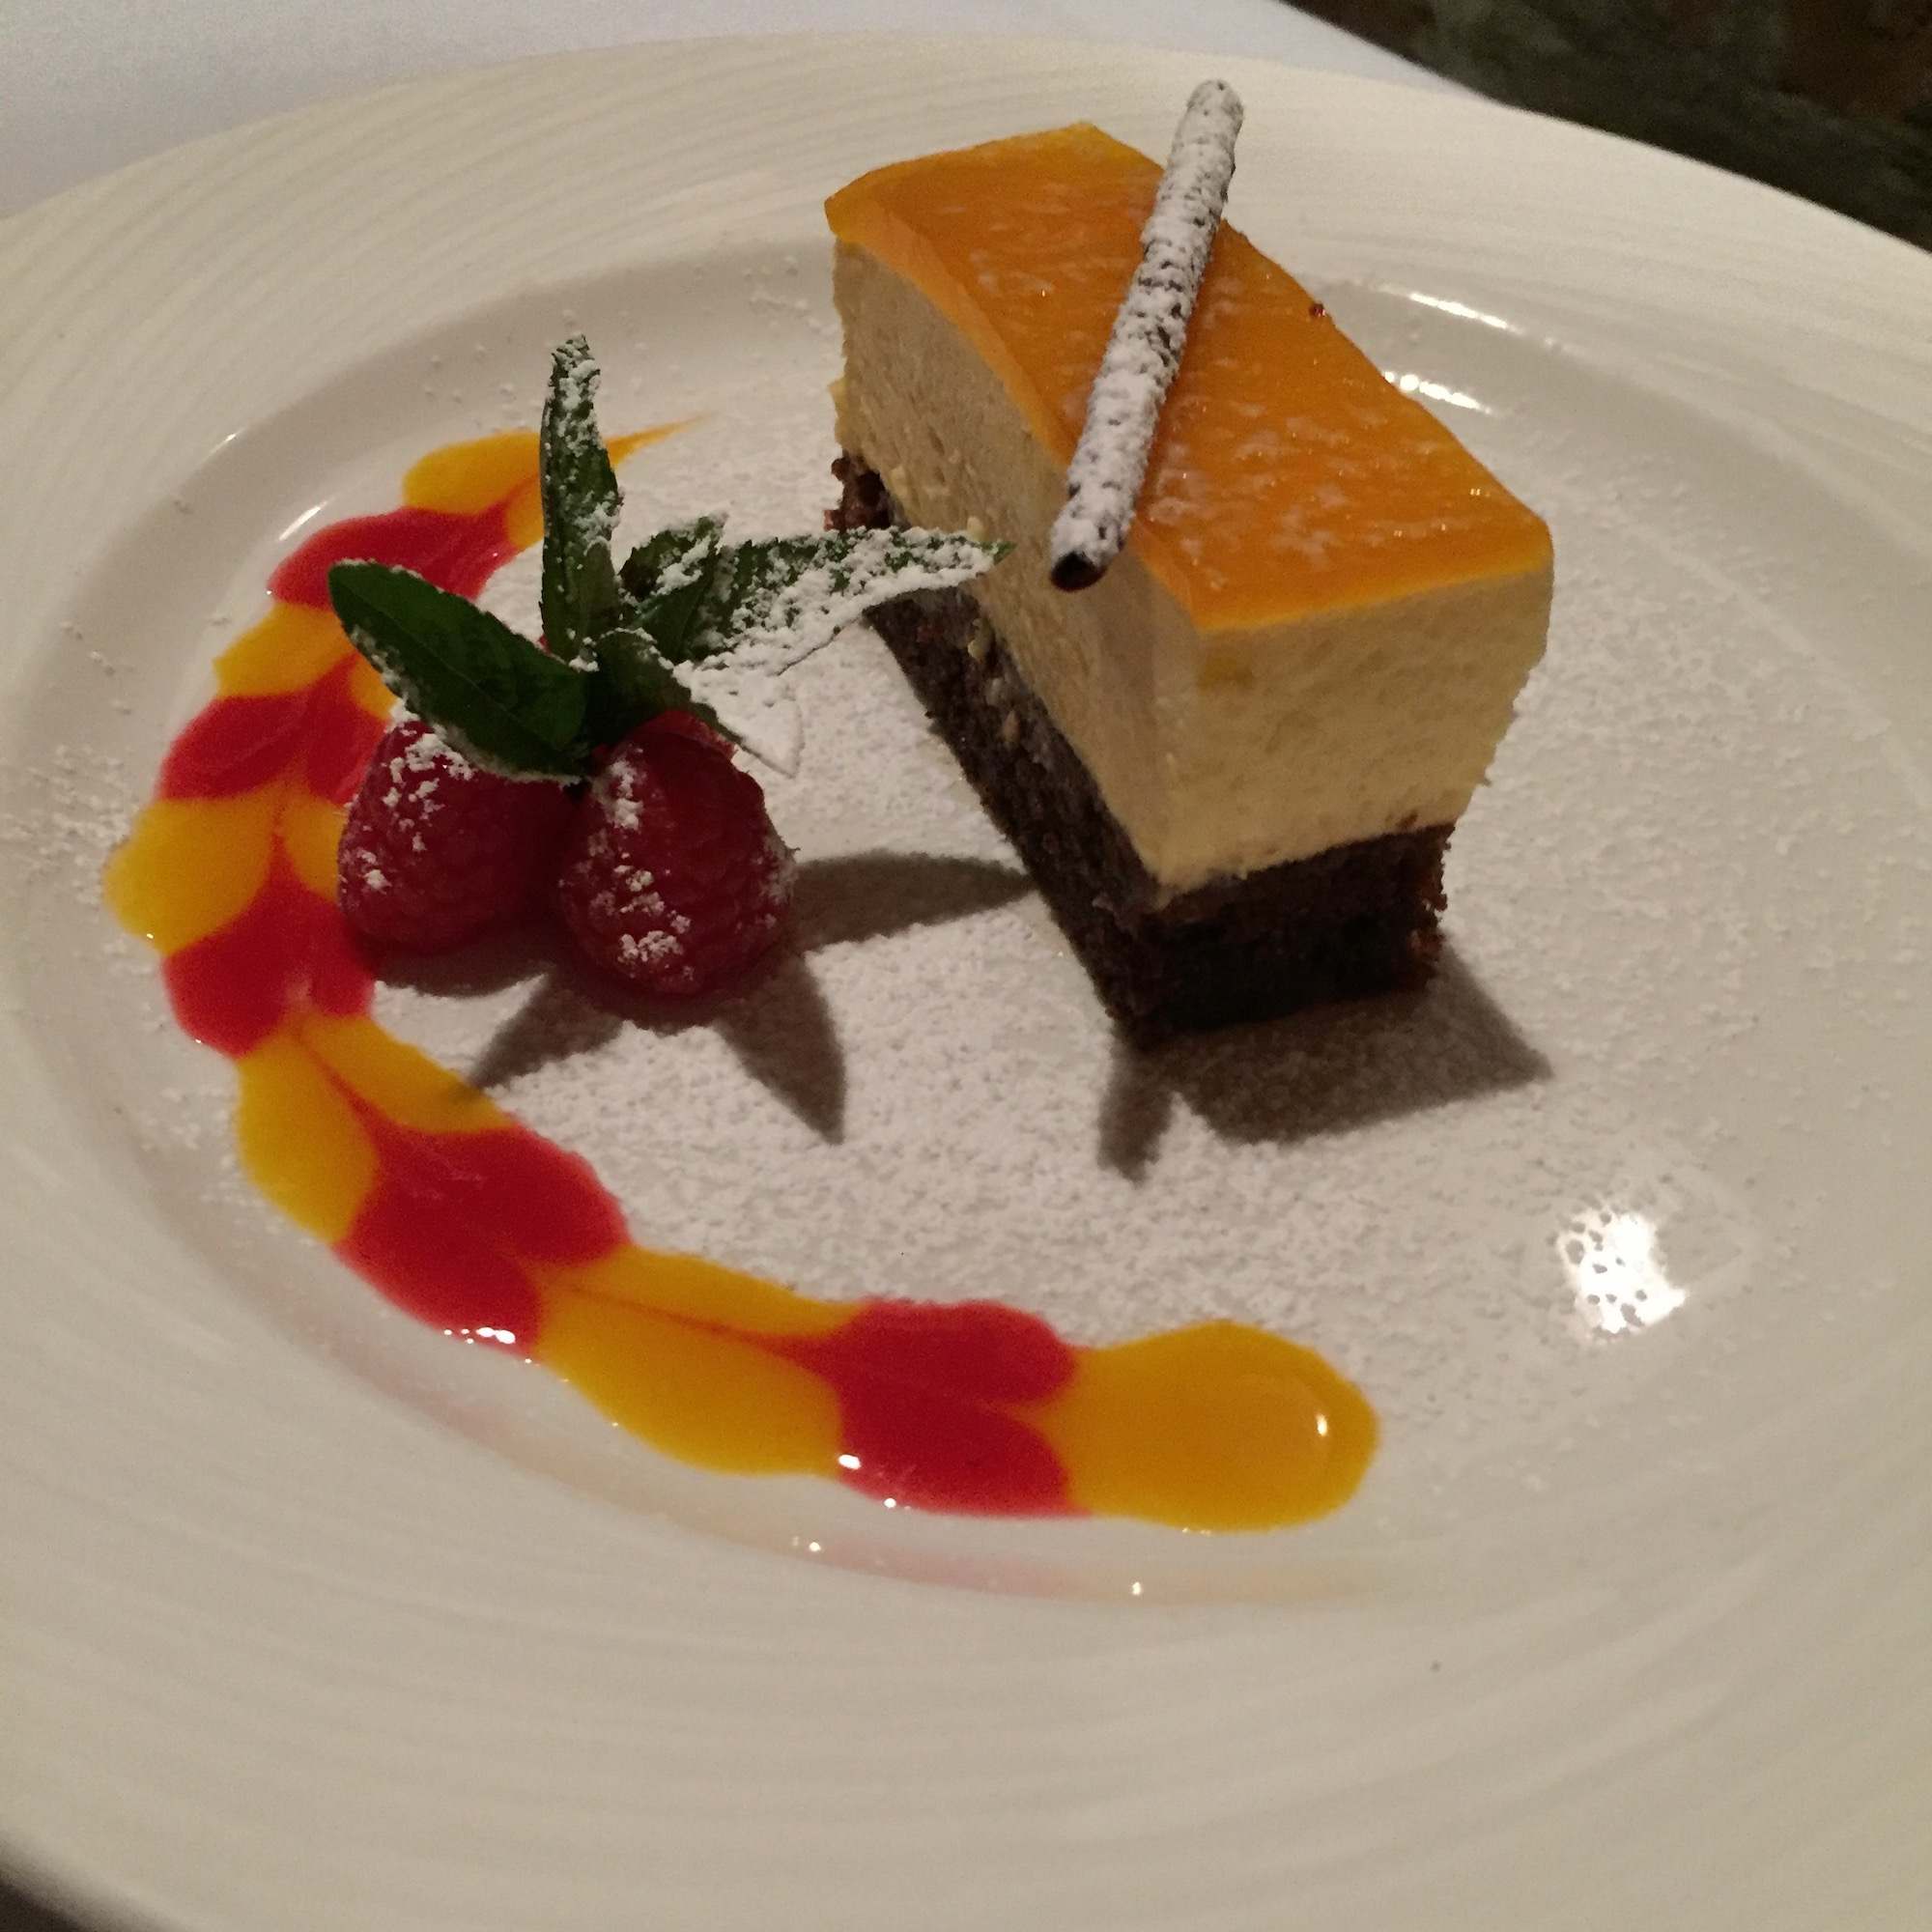 Orange and Chocolate Dessert